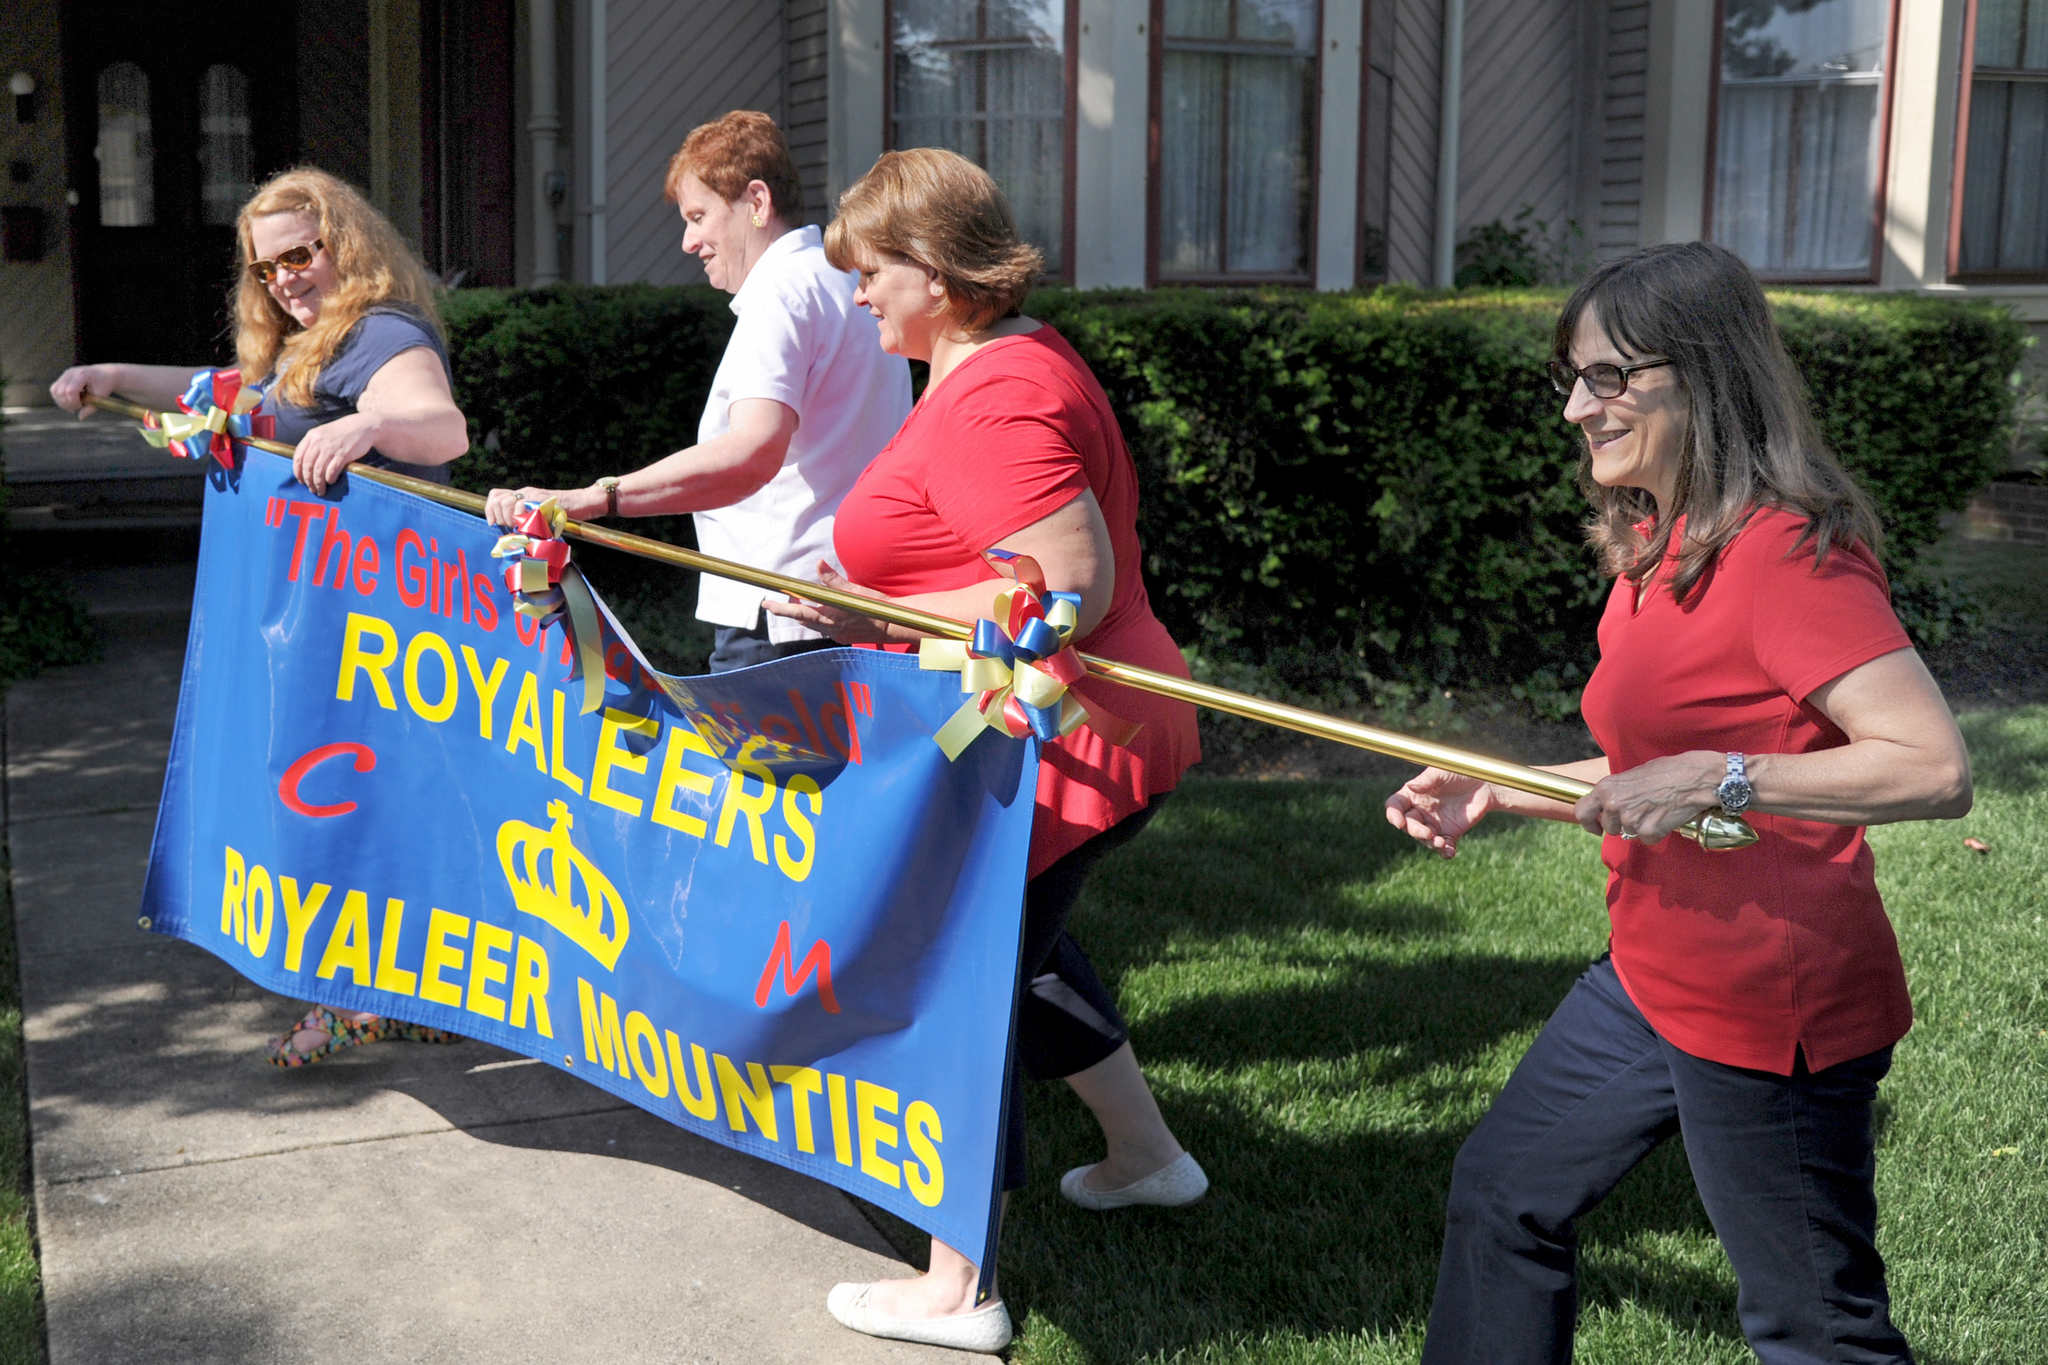 From left, former Royaleers Edwina Kwoka, Maureen McLoone, Pat Thompson, and Terri Brennan with the new banner they will carry when the group reunites for Haddonfield´s Memorial Day Parade.